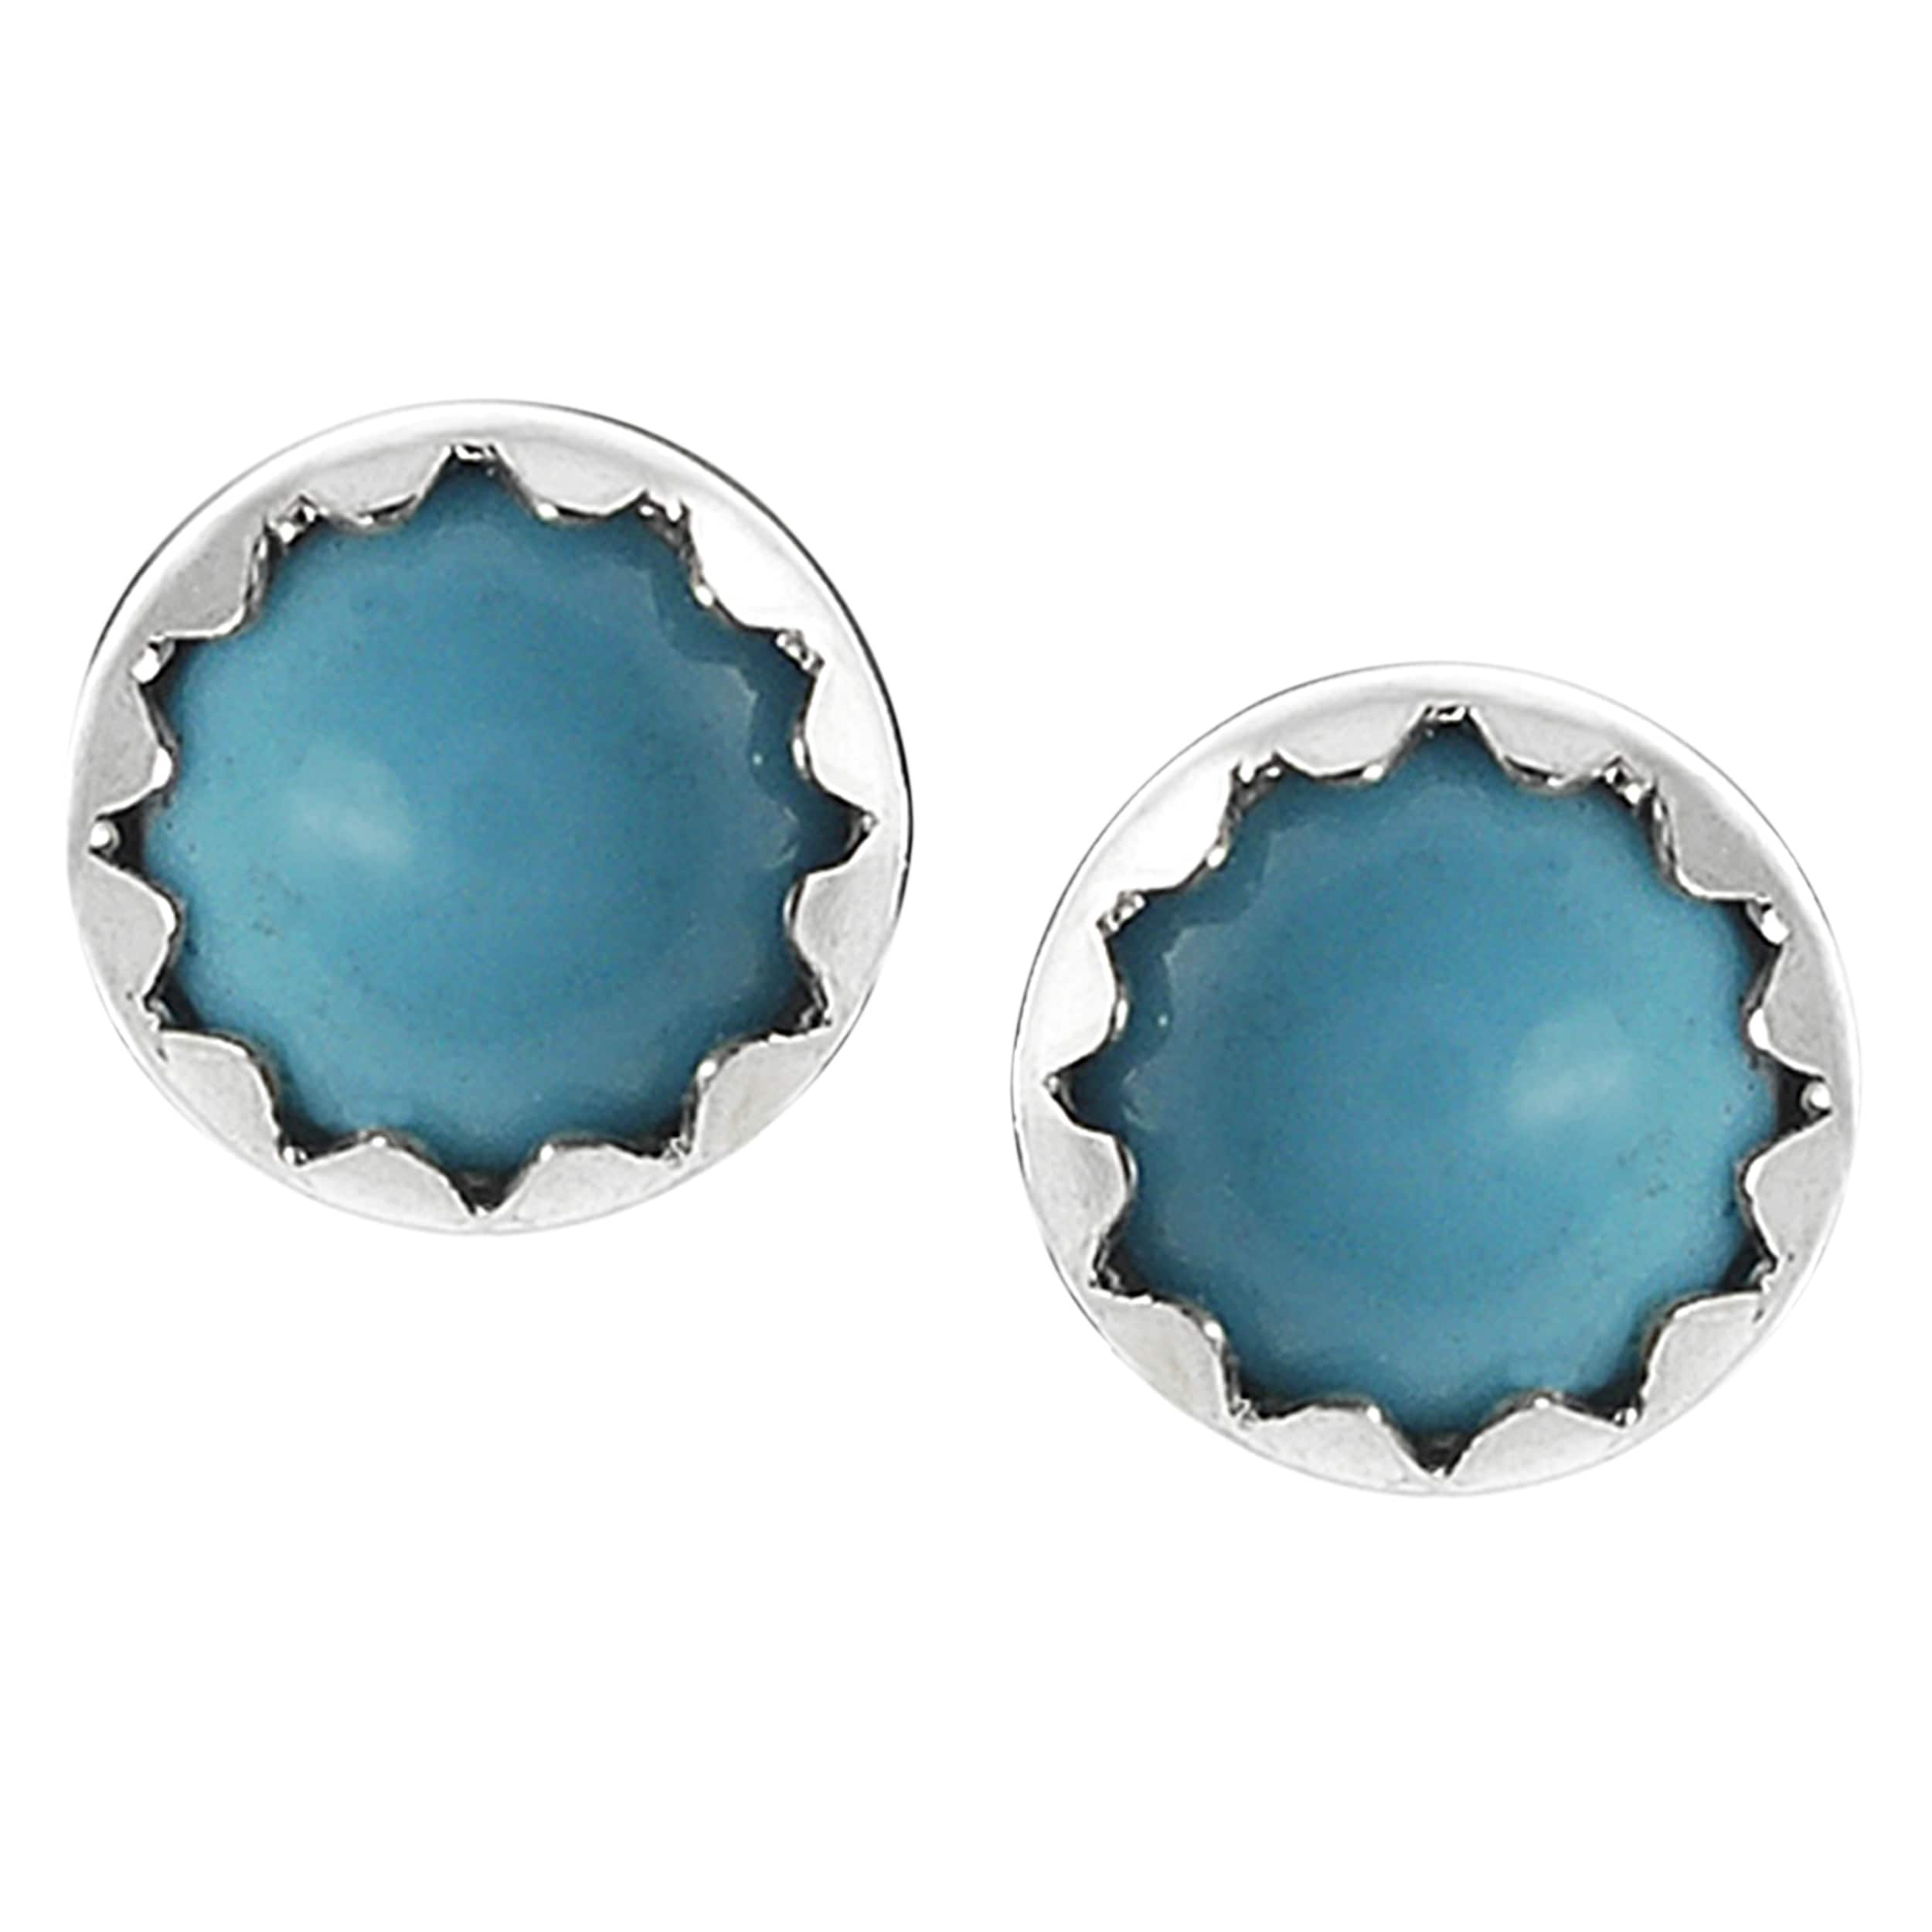 Journee Collection Sterling Silver Genuine Turquoise Stud Earrings